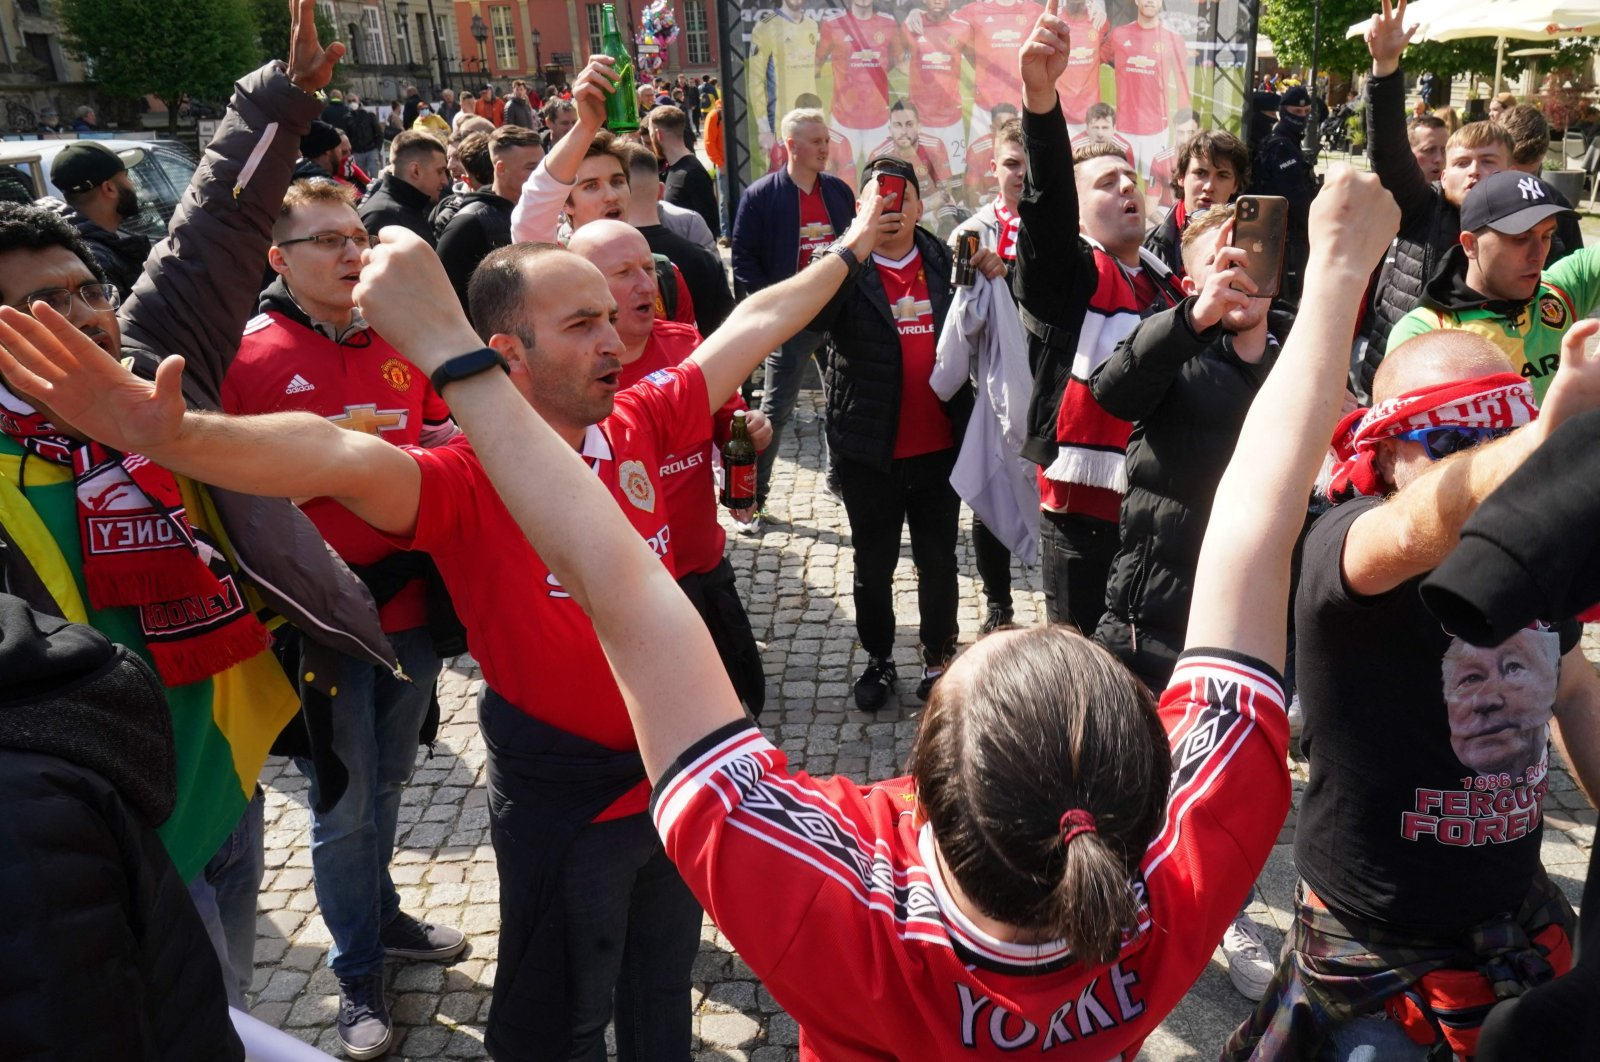 Manchester United supporters celebrate prior to the UEFA Europa League football final between Spain's Villarreal and England's Manchester United at Gdansk Stadium in Gdansk, Poland, May 26, 2021. (AFP Photo)